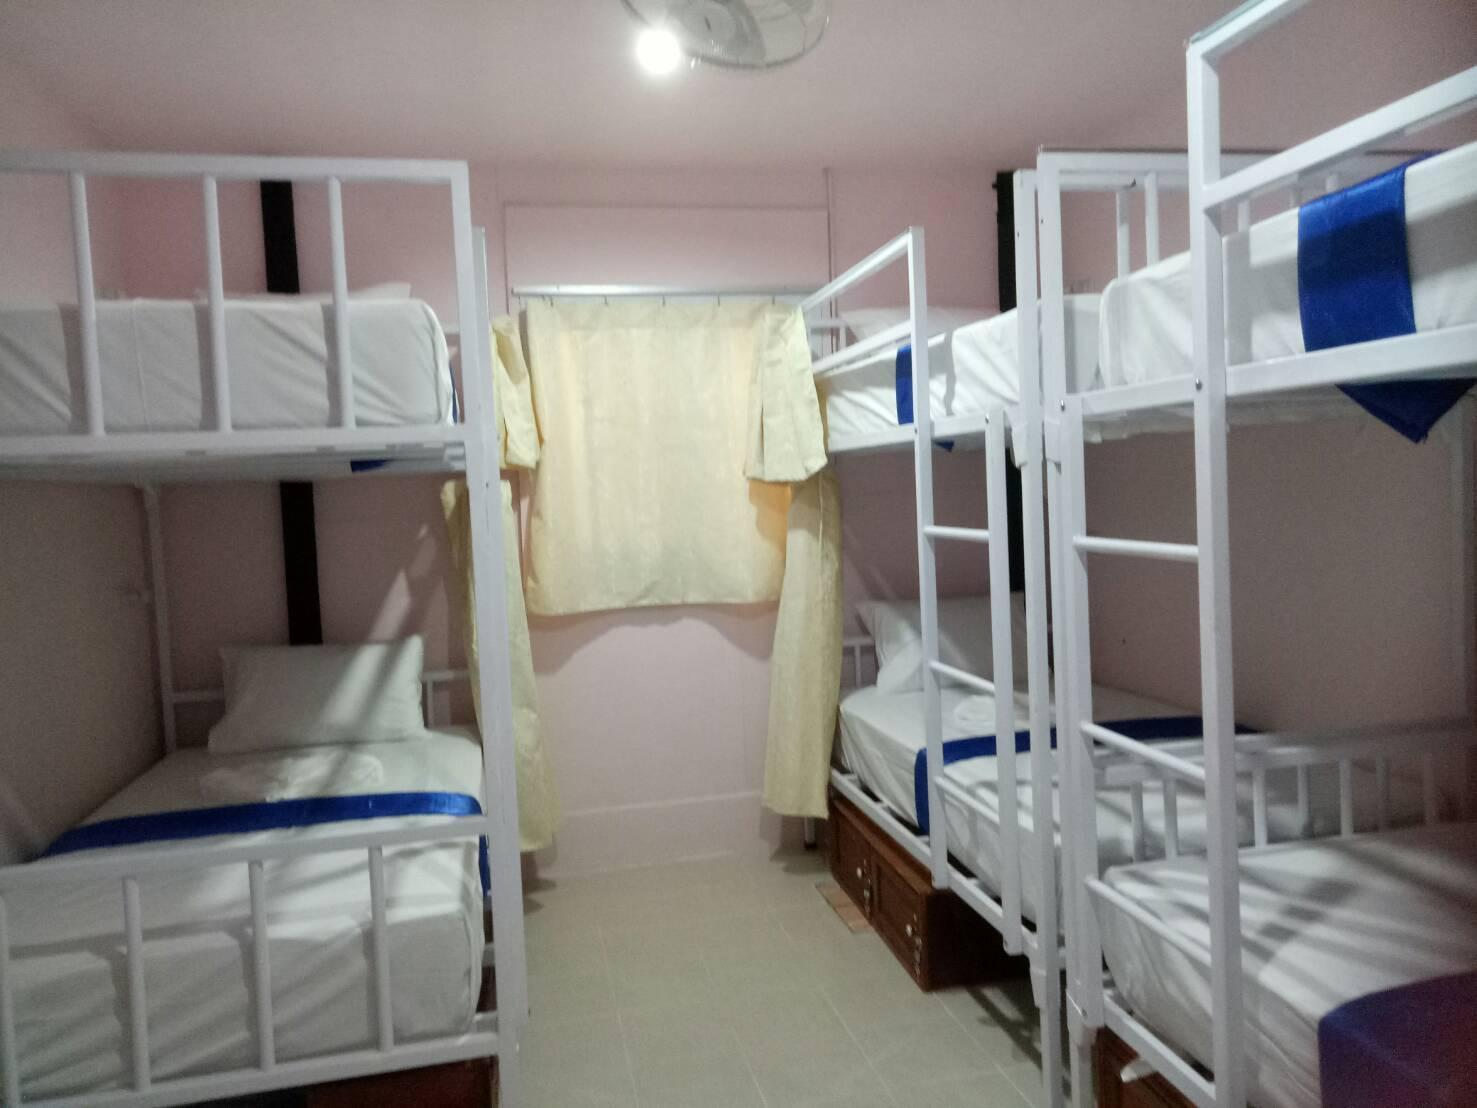 Hostel - Bunk Bed in Mixed Dormitory Room